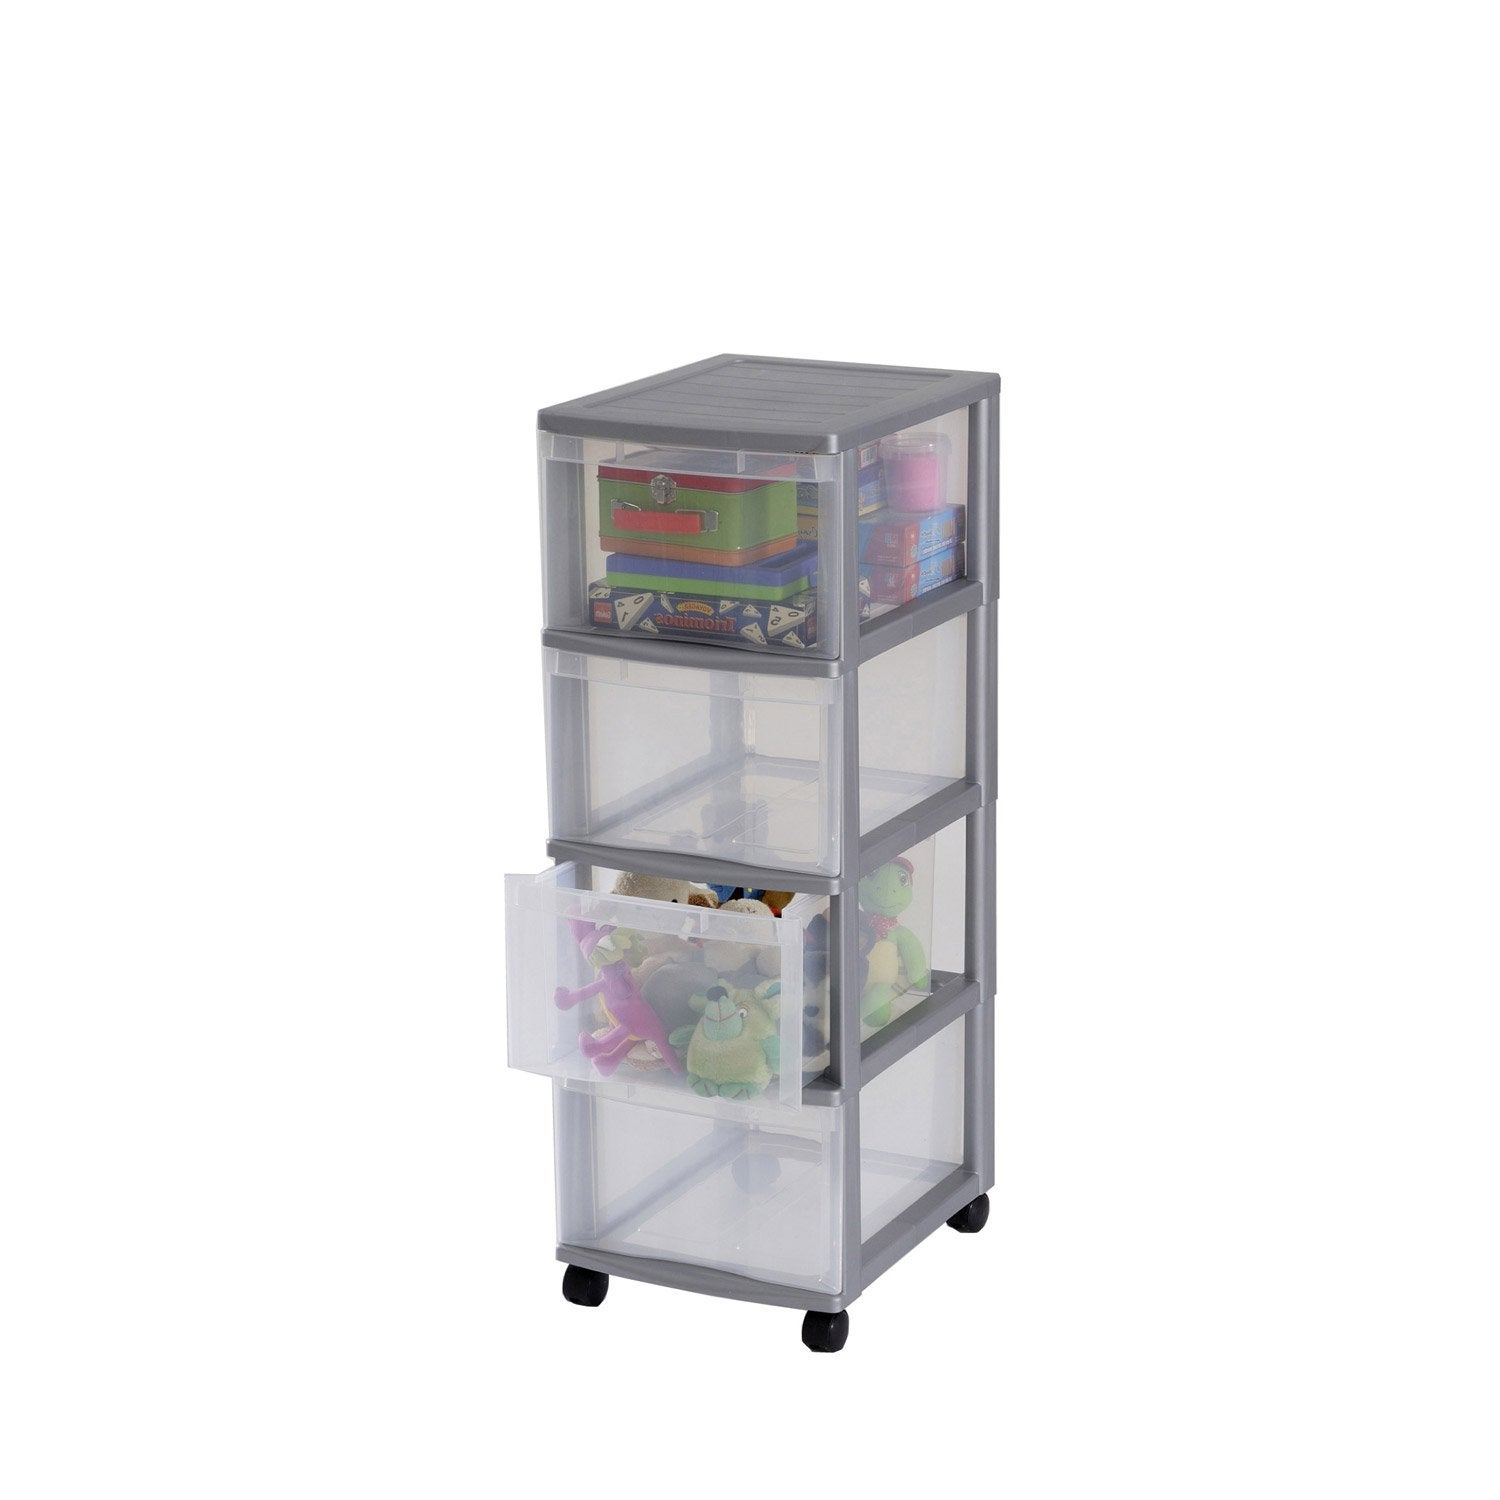 Tour de rangement optimo plastique x x for Meuble bureau leroy merlin